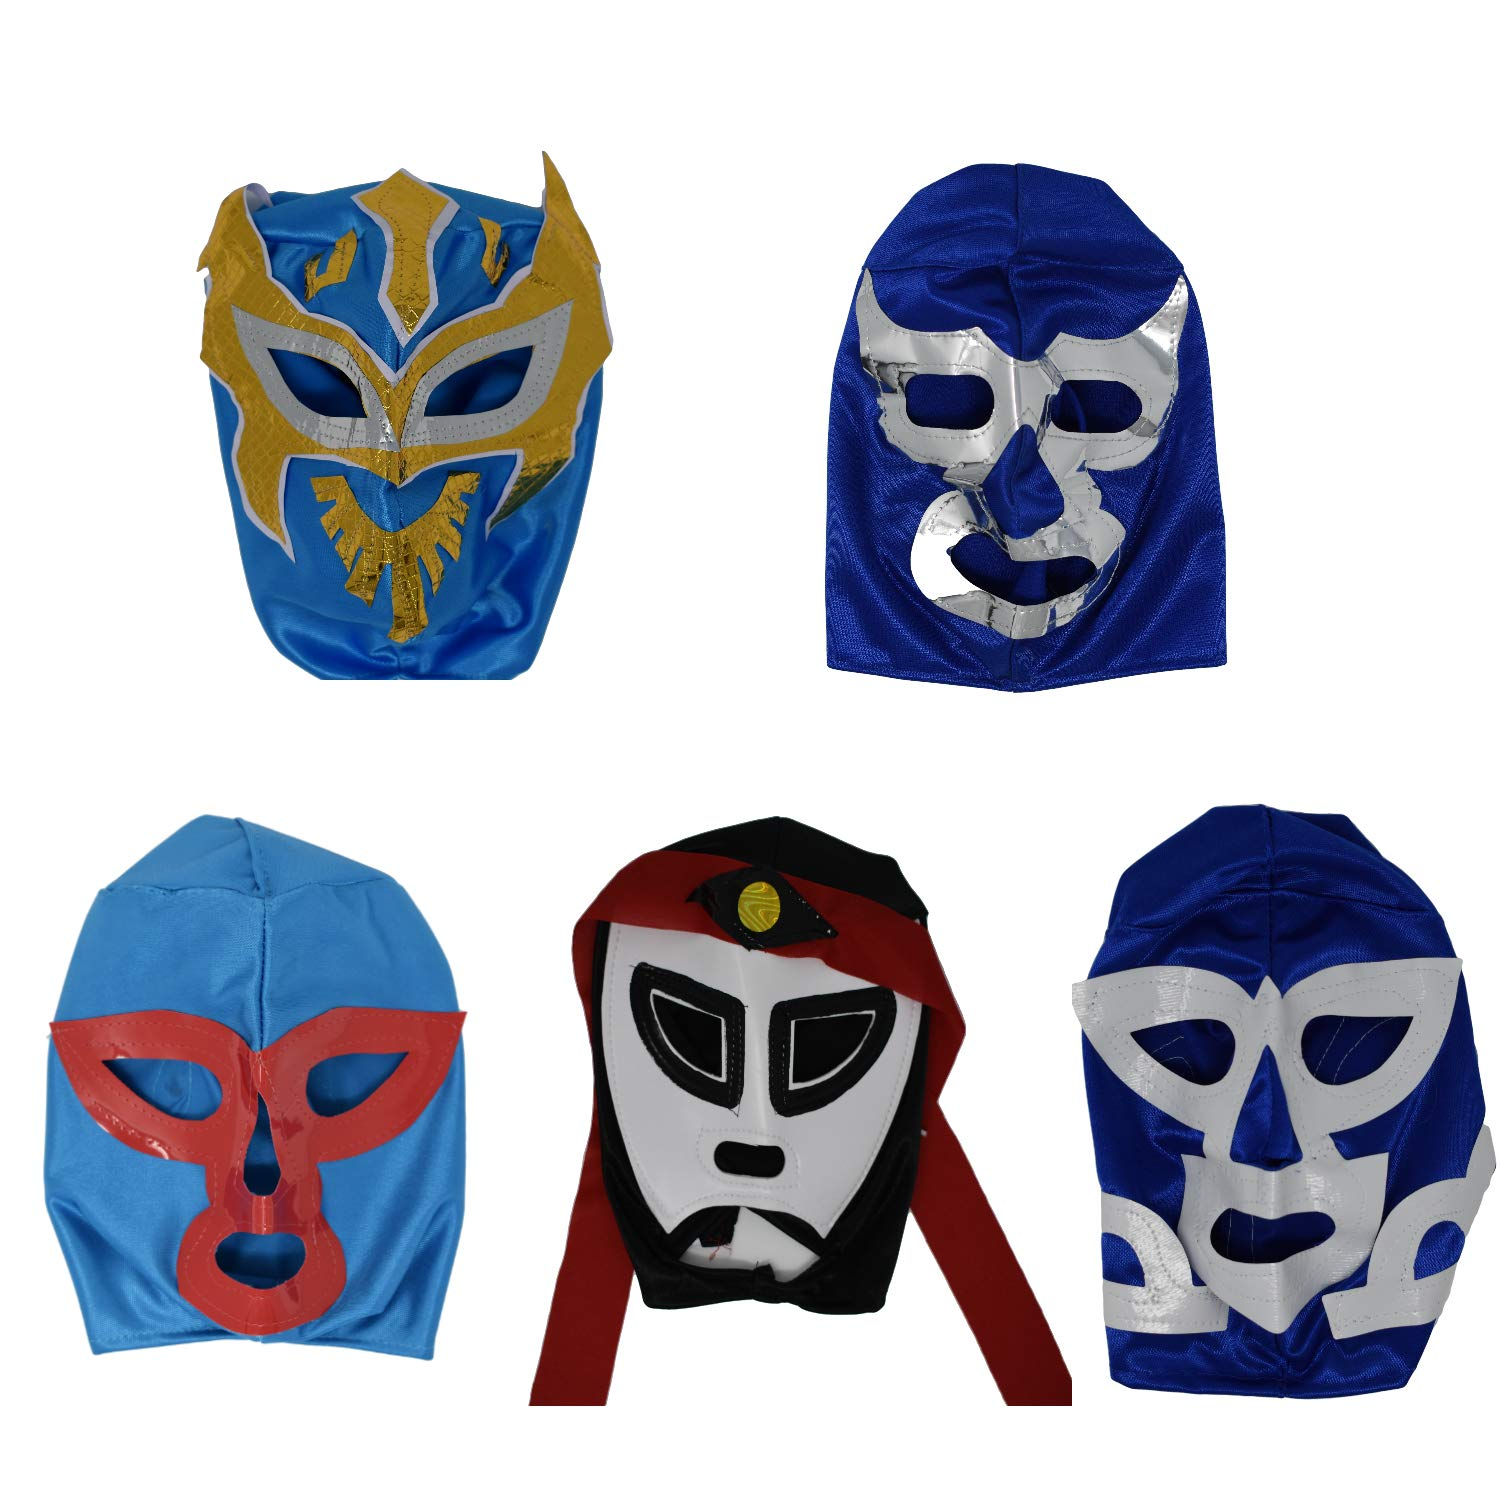 Pack of 5 Mexican Wrestling Masks Ideal for Lucha Libre Parties (Children's Size) Made in Mexico